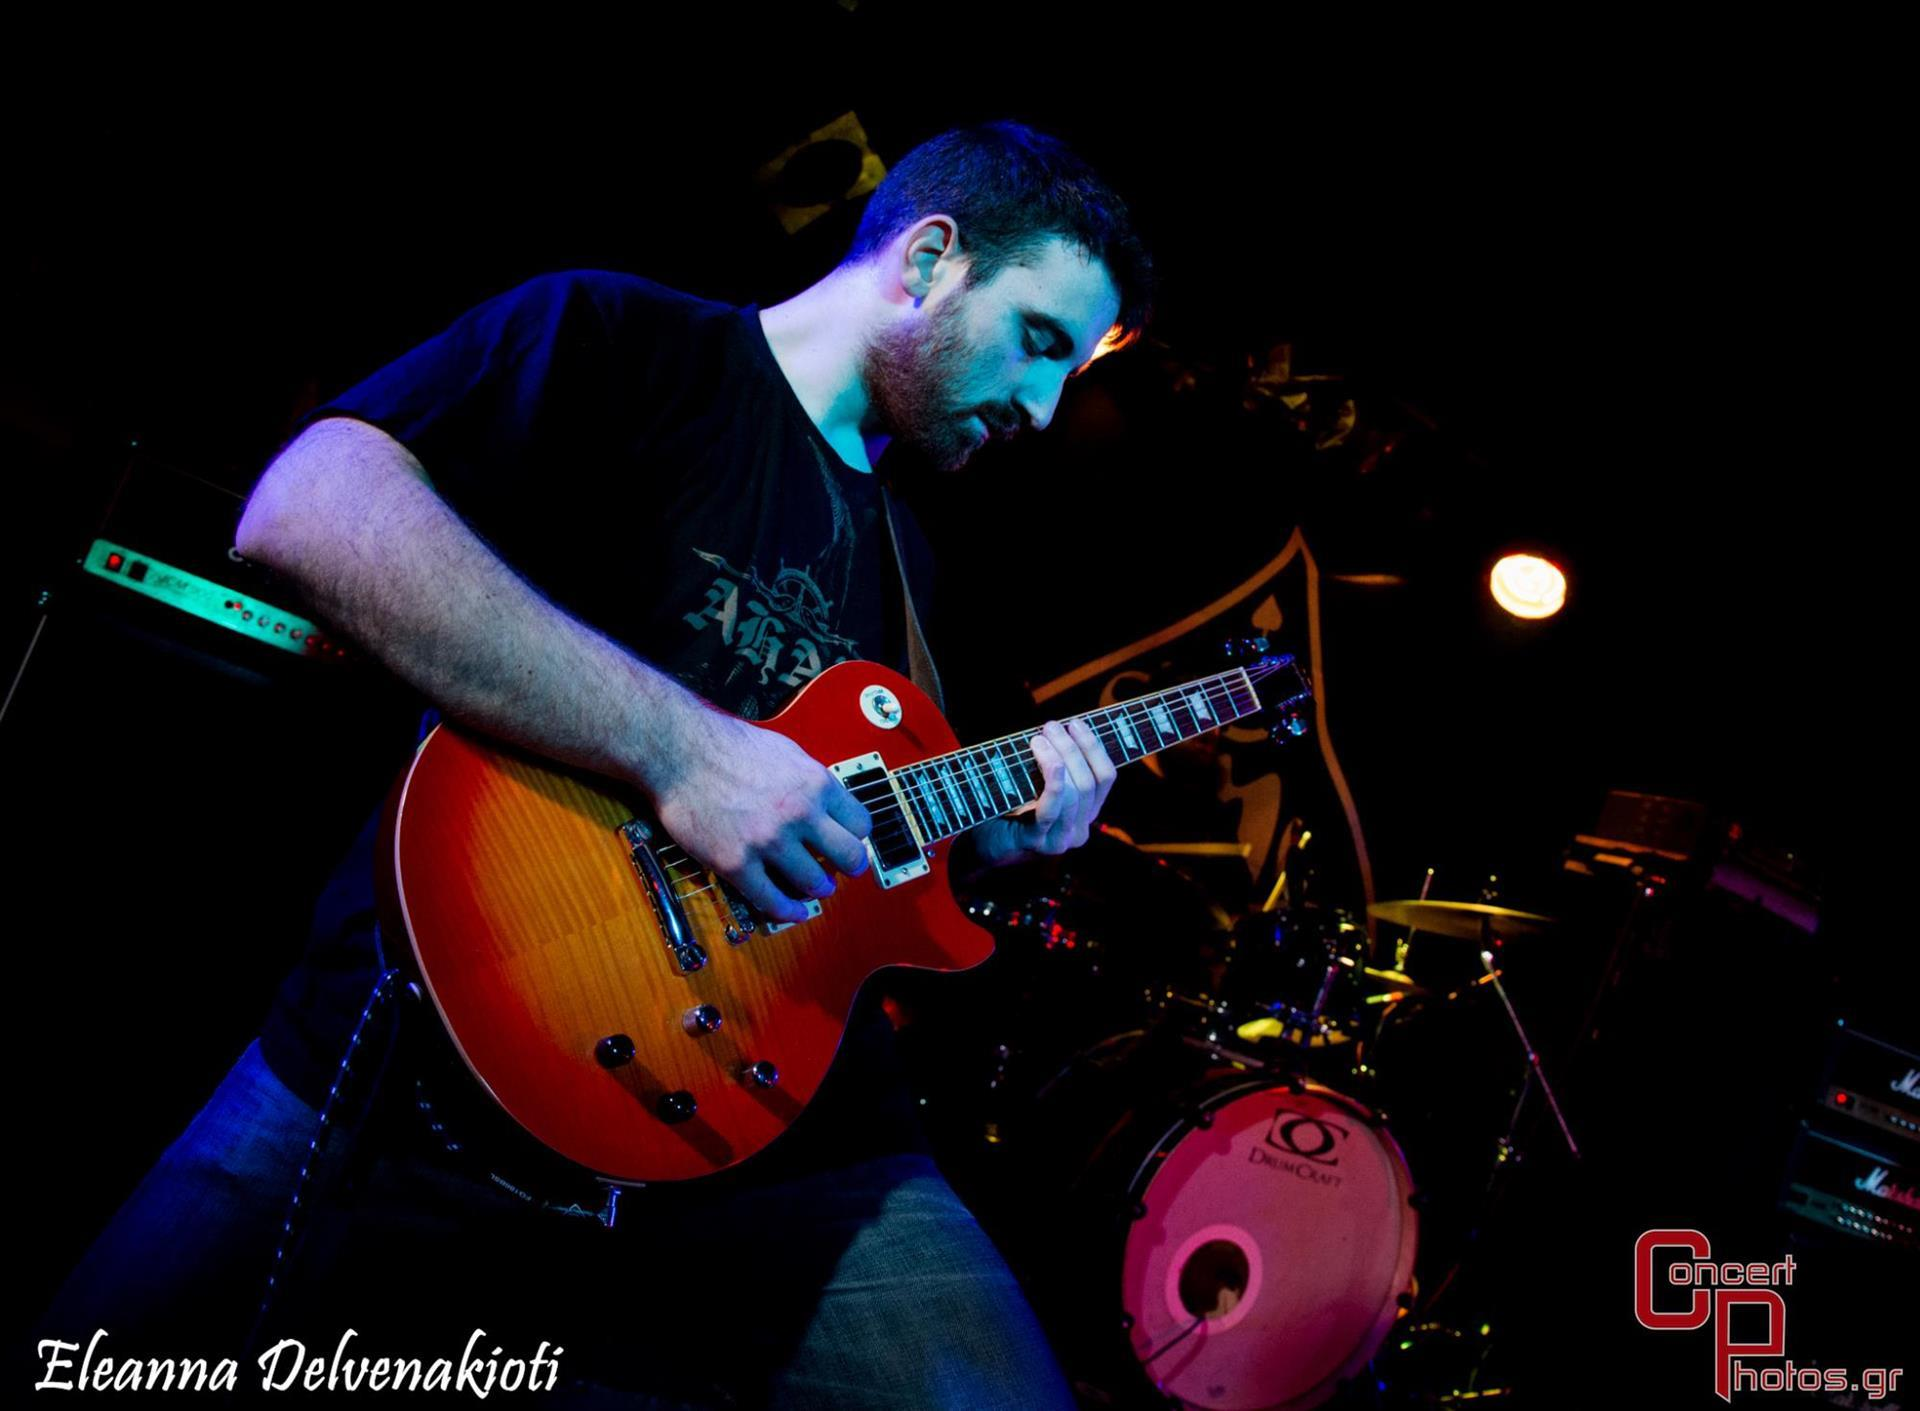 Battle Of The Bands Athens - Leg 4-test photographer:  - Battle Of The Bands-20150208-232322